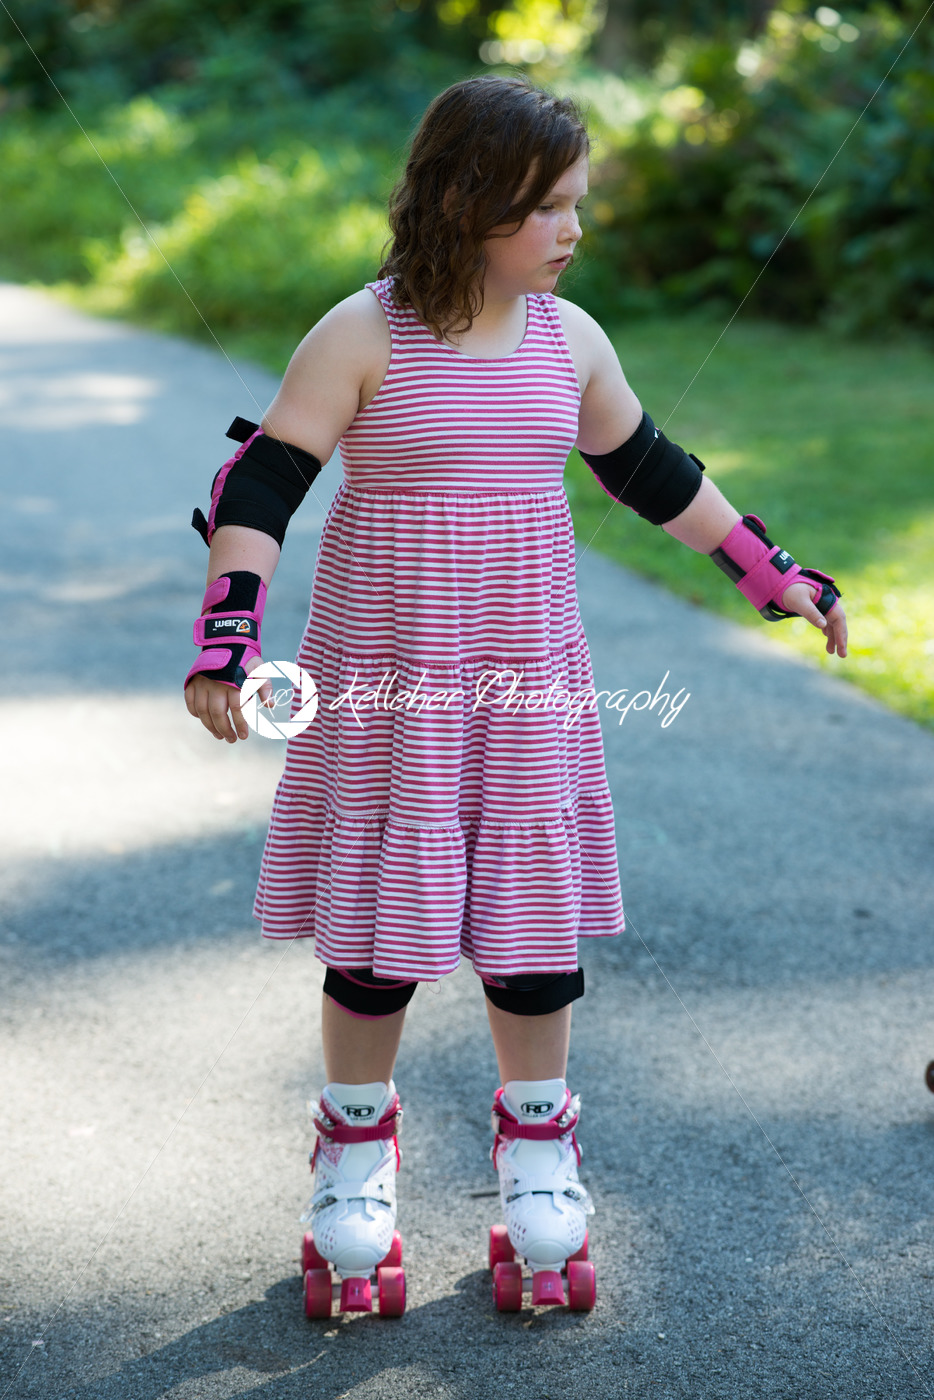 Protection of knees and elbows during roller skating